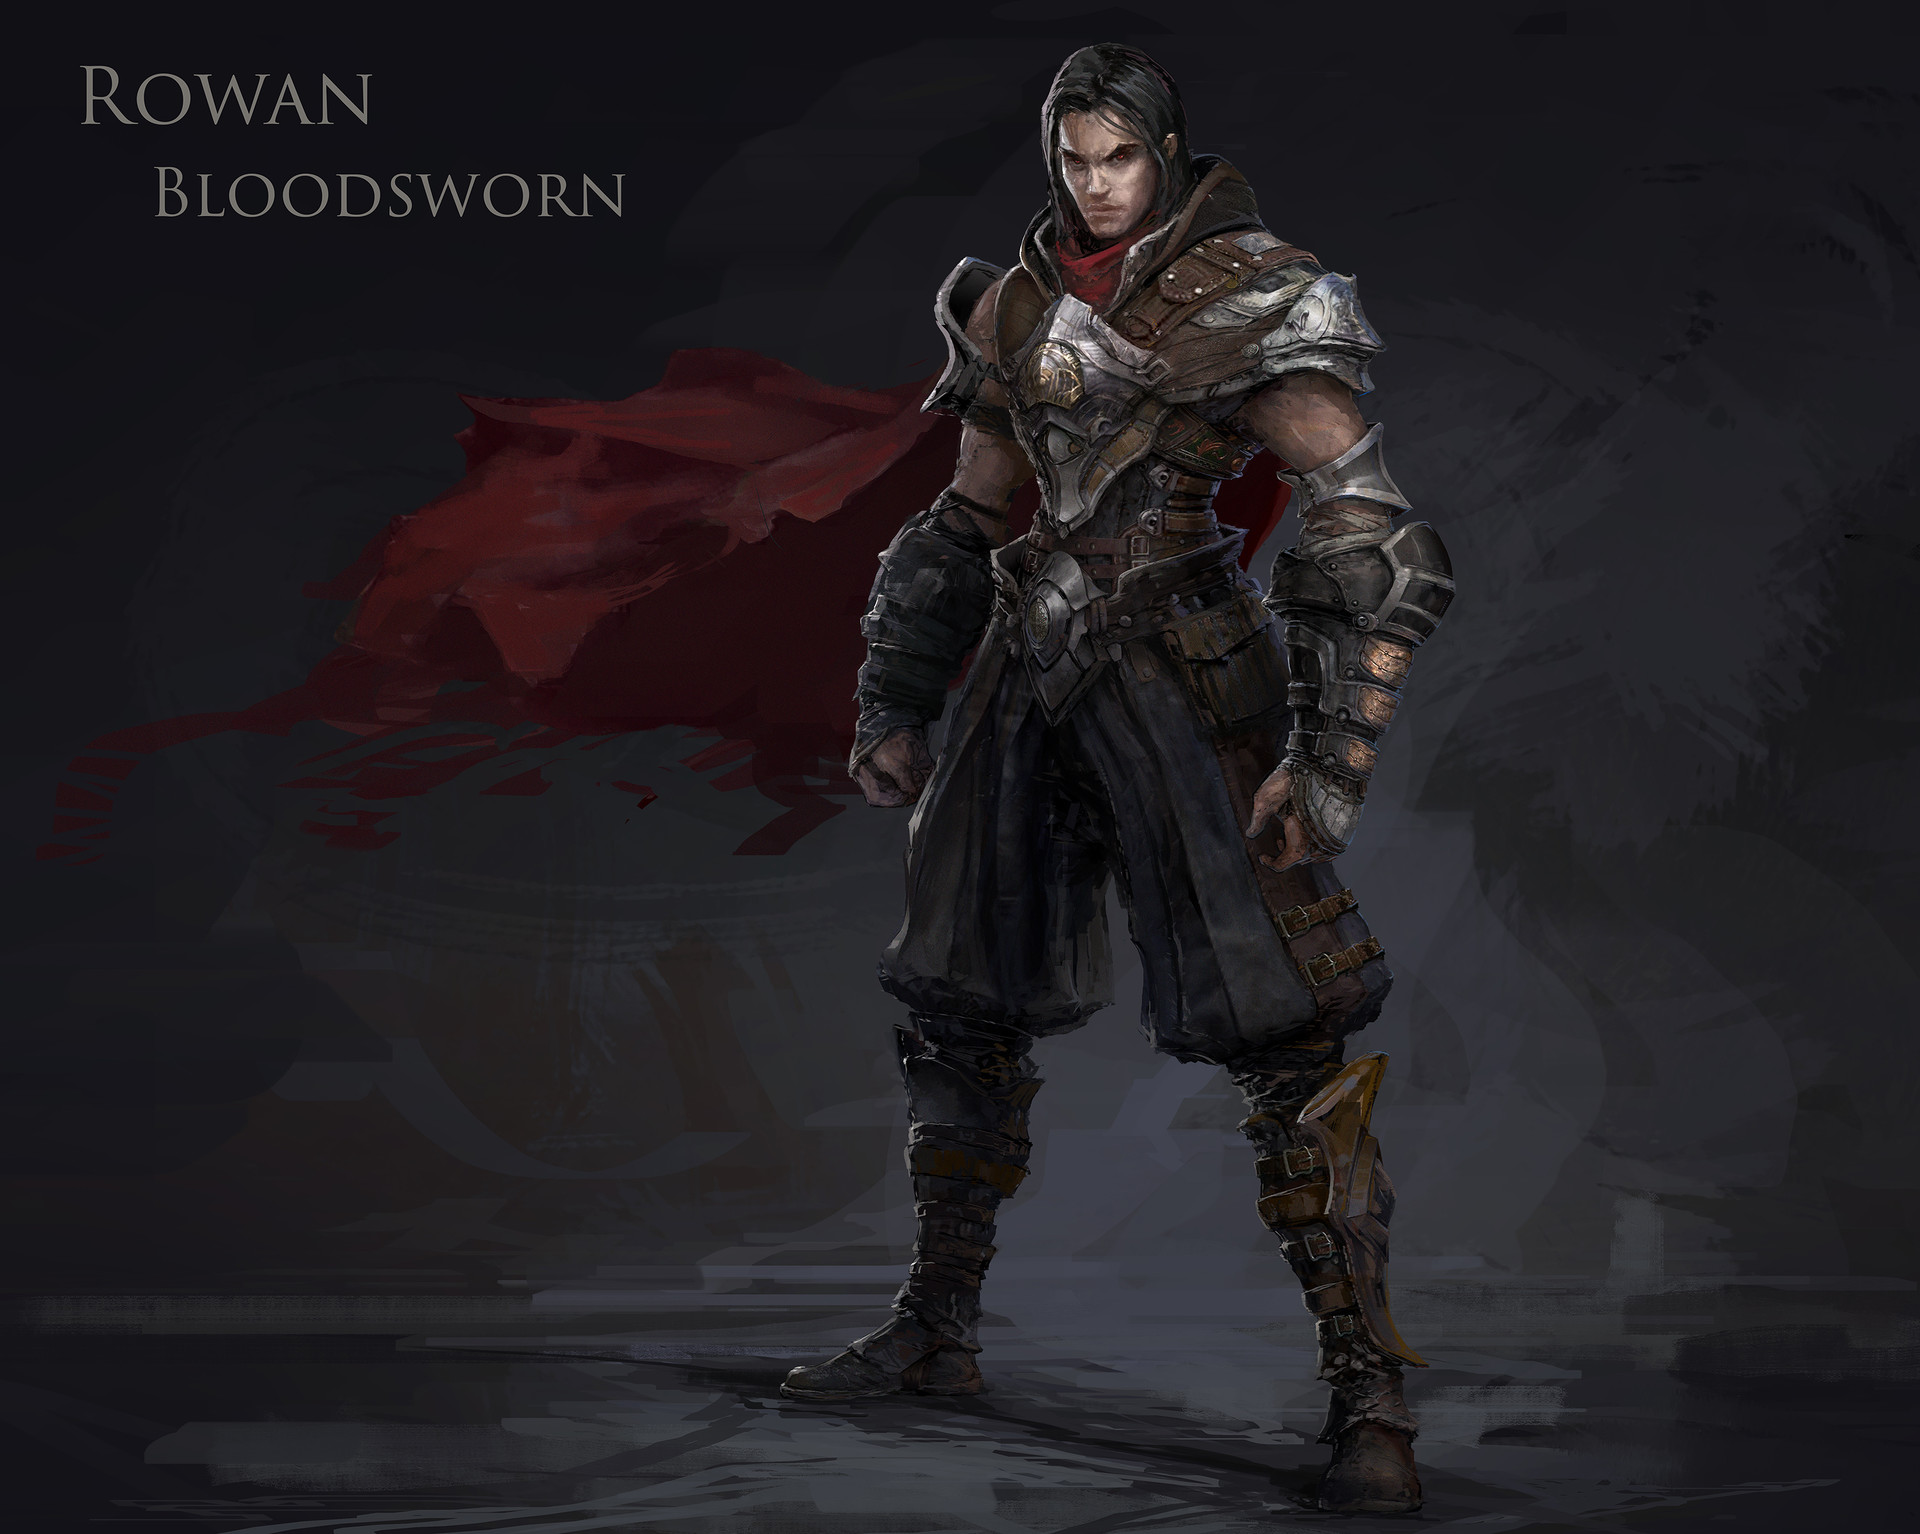 Rowan Bloodsworn